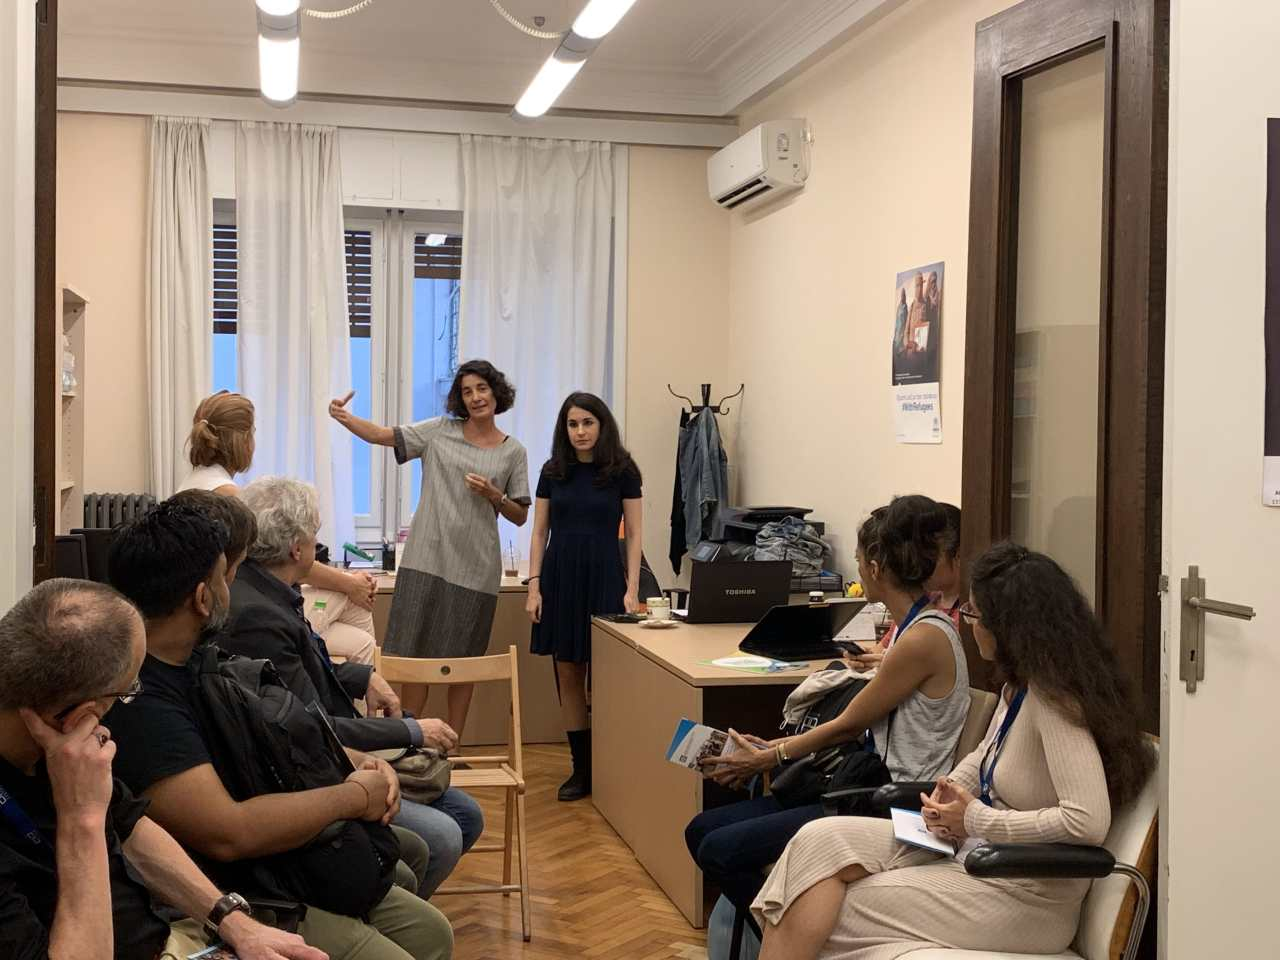 Field visit to the Integration Centre for Migrant Workers - Ecumenical Refugee Program of the Church of Greece, Athens - October 2019